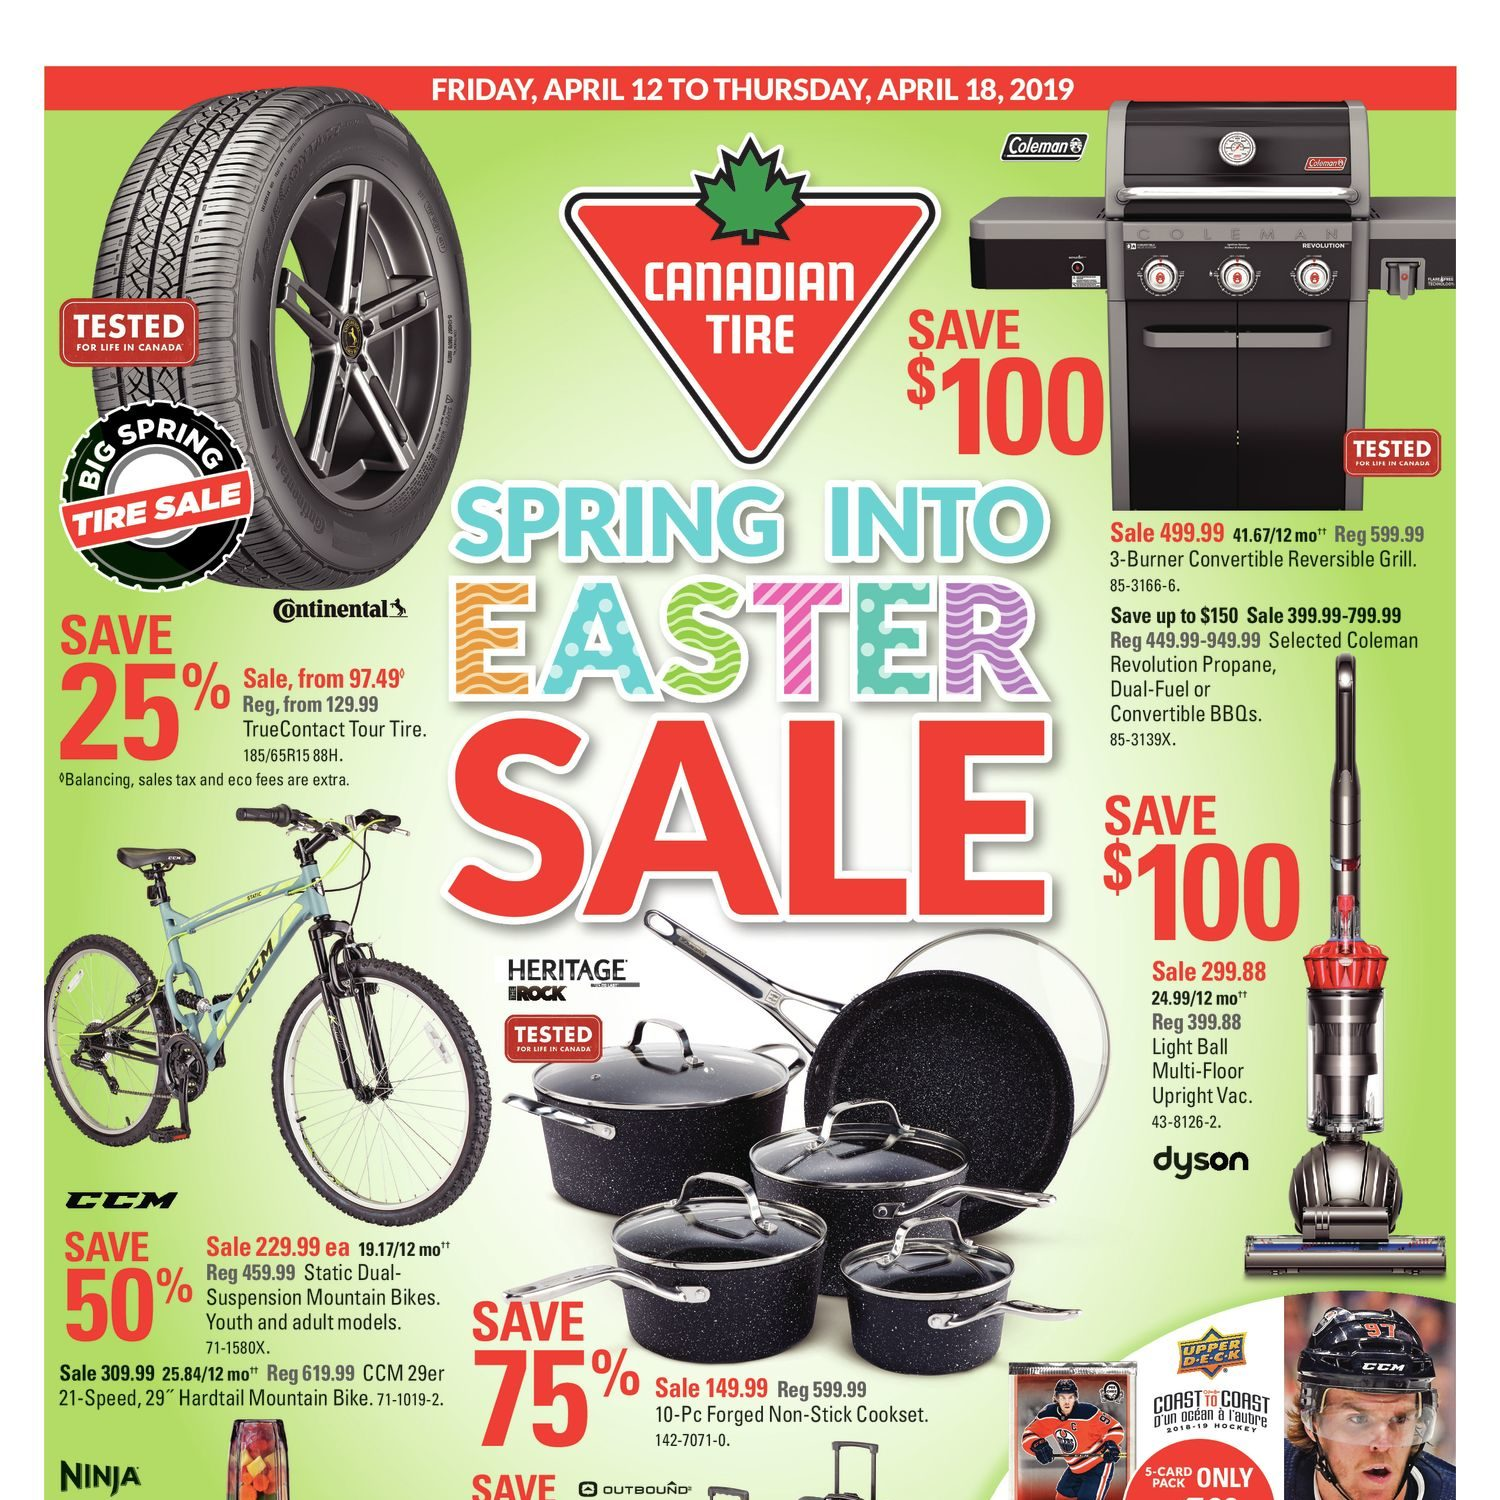 Canadian Tire Weekly Flyer - Weekly - Spring Into Easter Sale - Apr